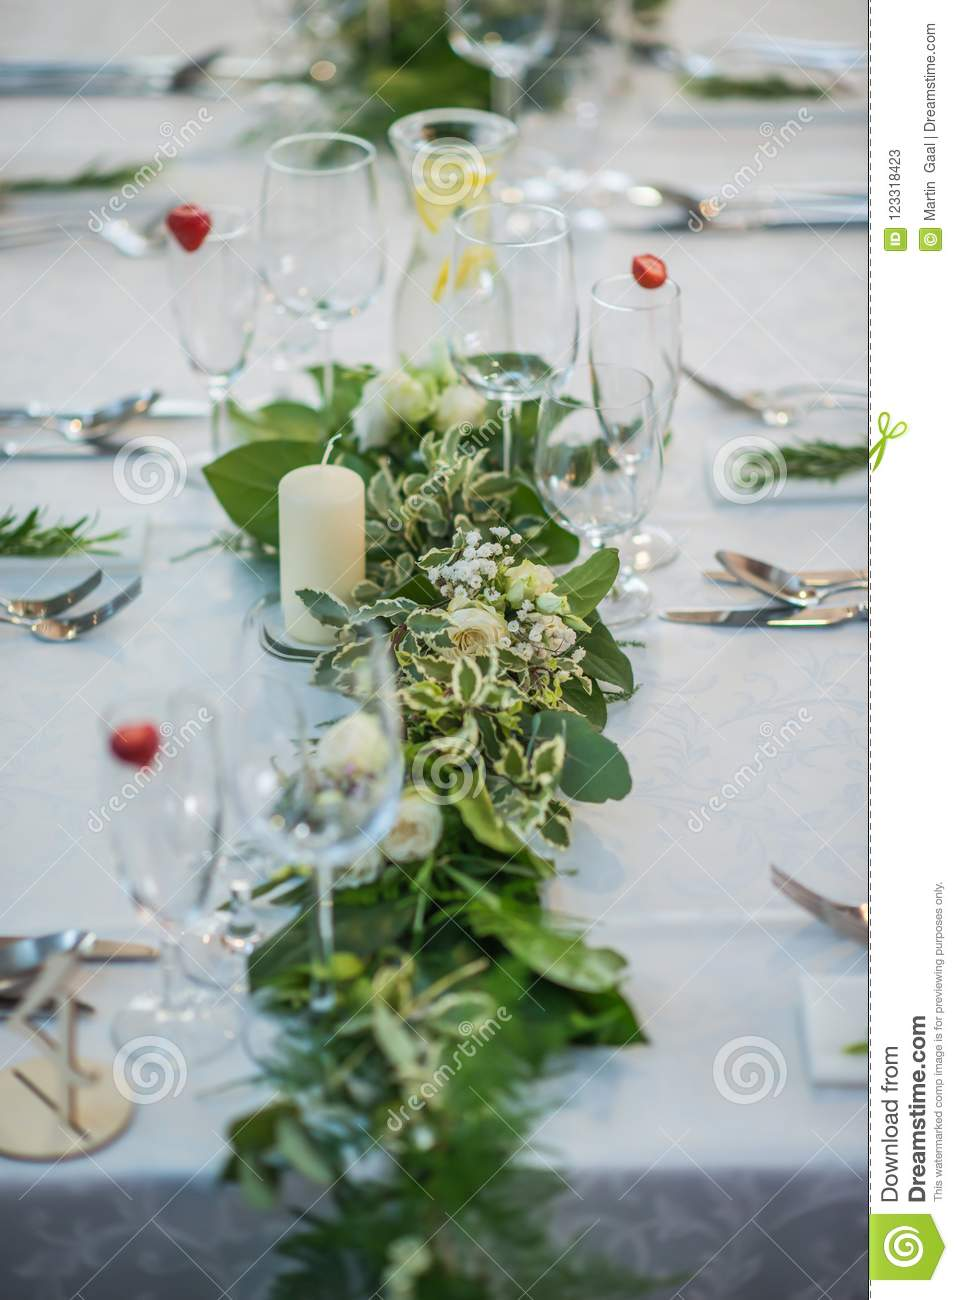 Wedding table with exclusive floral arrangement prepared for reception, wedding or event centerpiece in greenery style